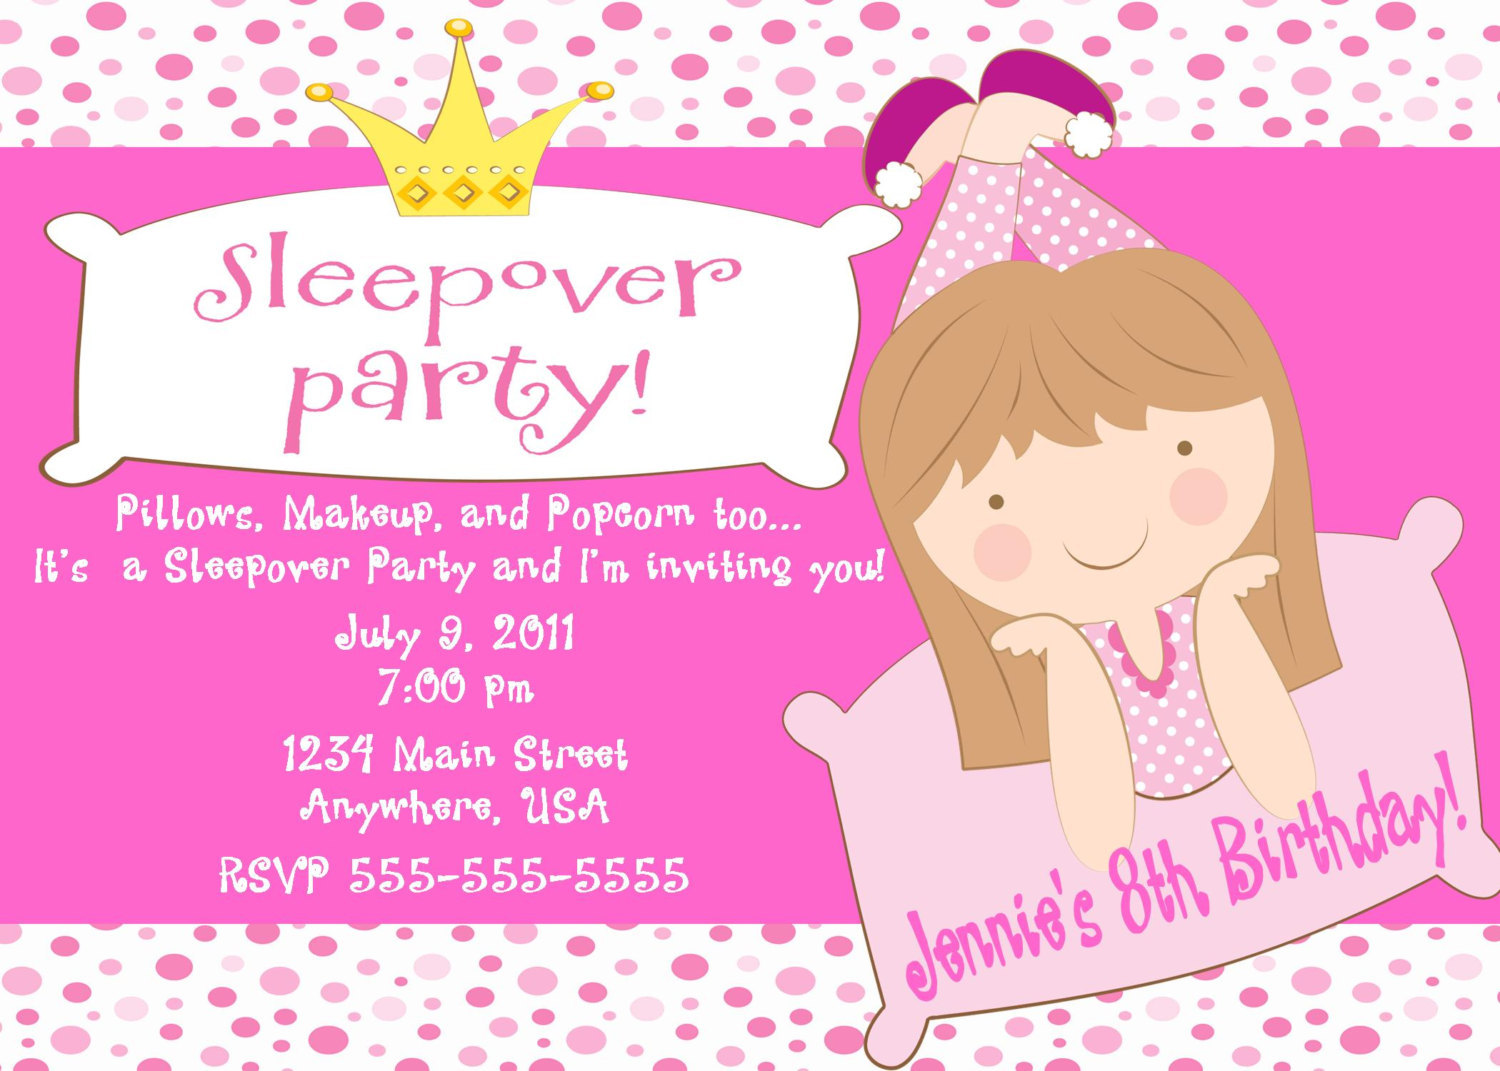 free printable birthday sleepover invitation templates ; 7b5cbe5cd98d997fb005357eb6ee6fd8